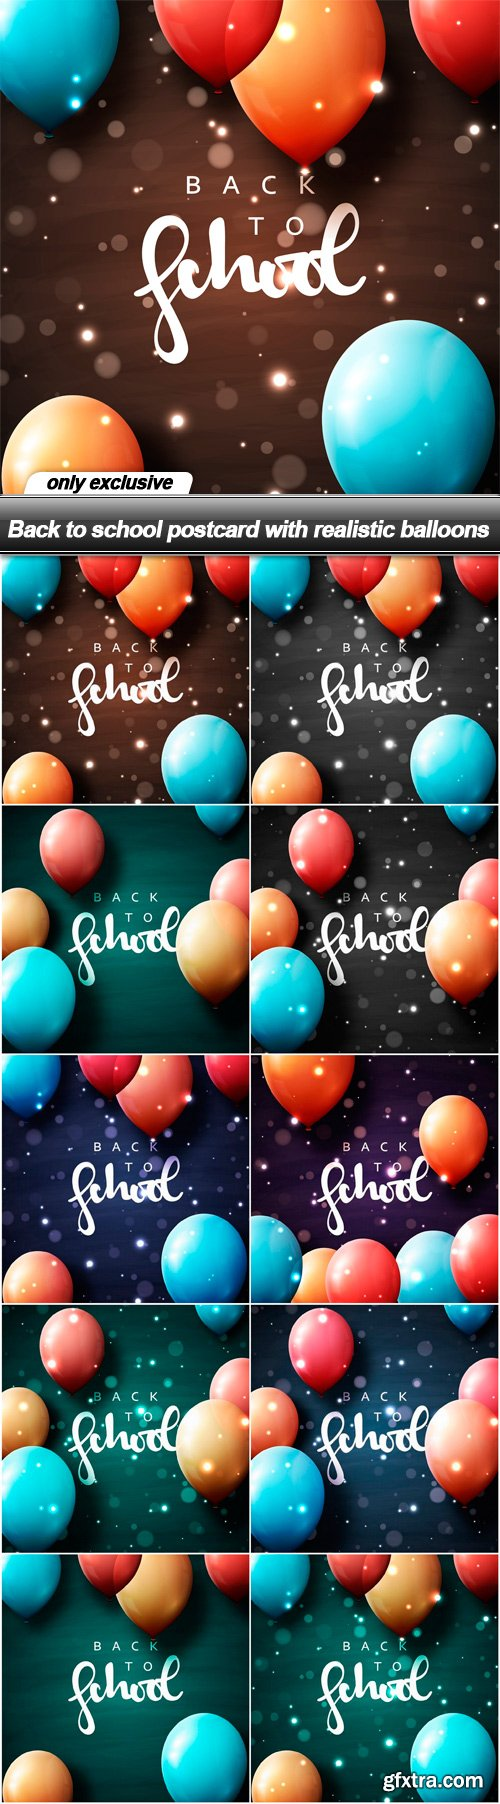 Back to school postcard with realistic balloons - 10 EPS